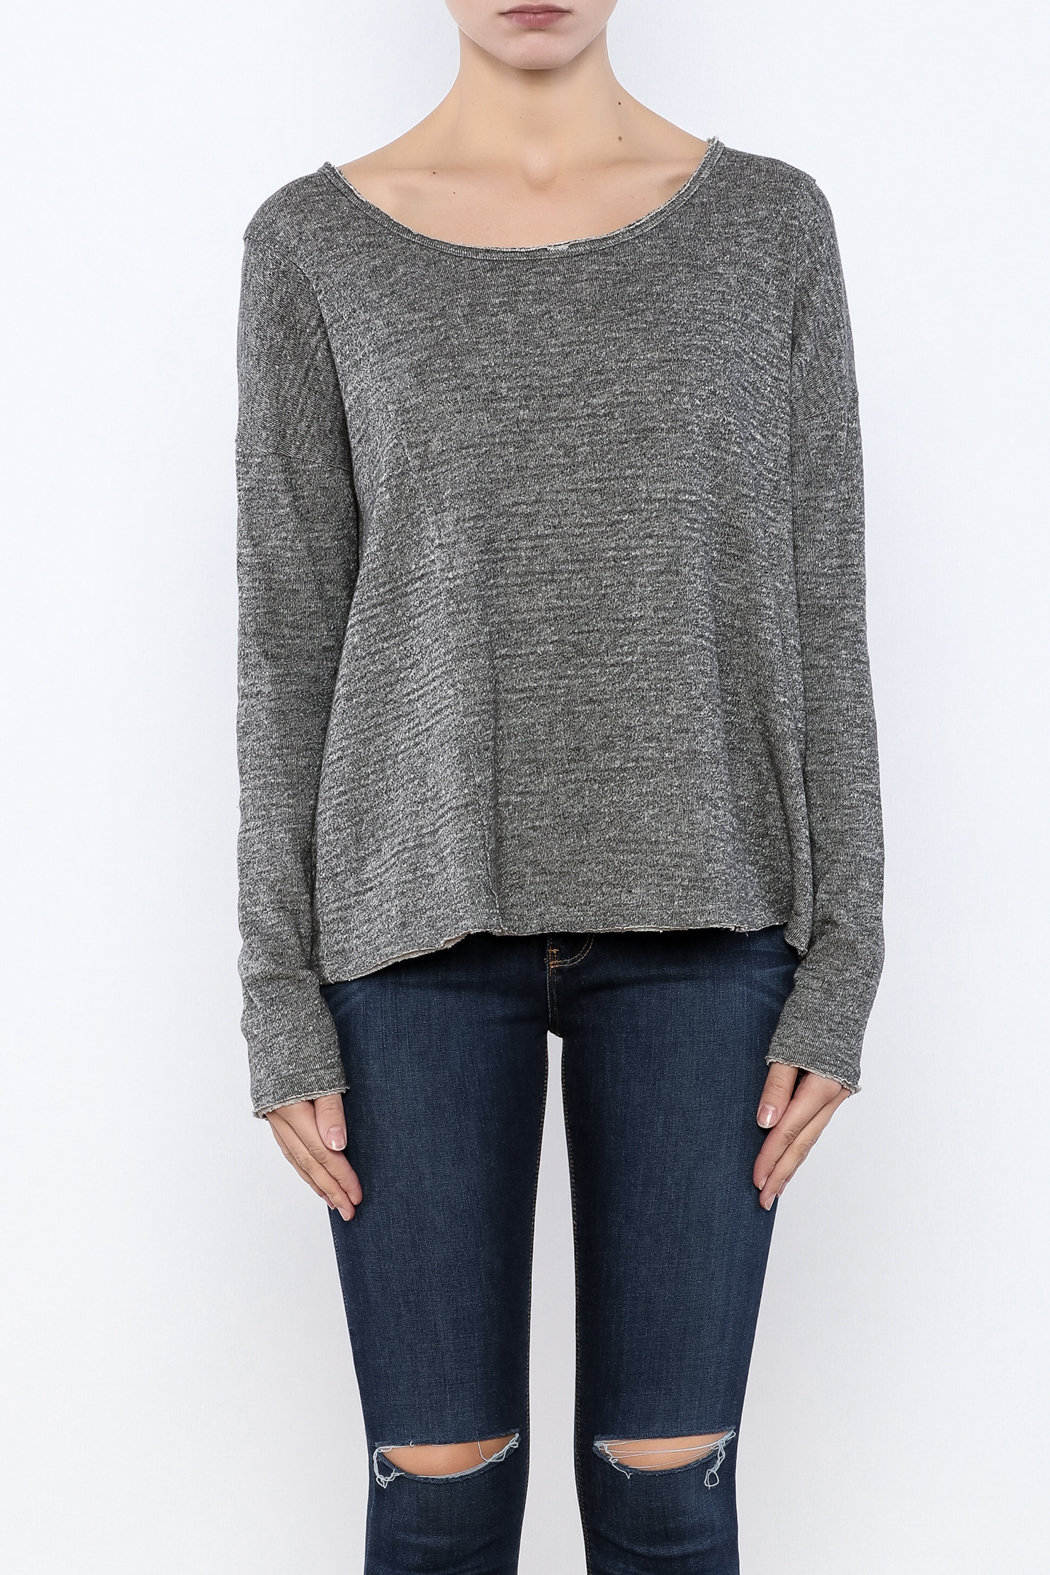 Others Follow  Winding Road Sweatshirt - Side Cropped Image